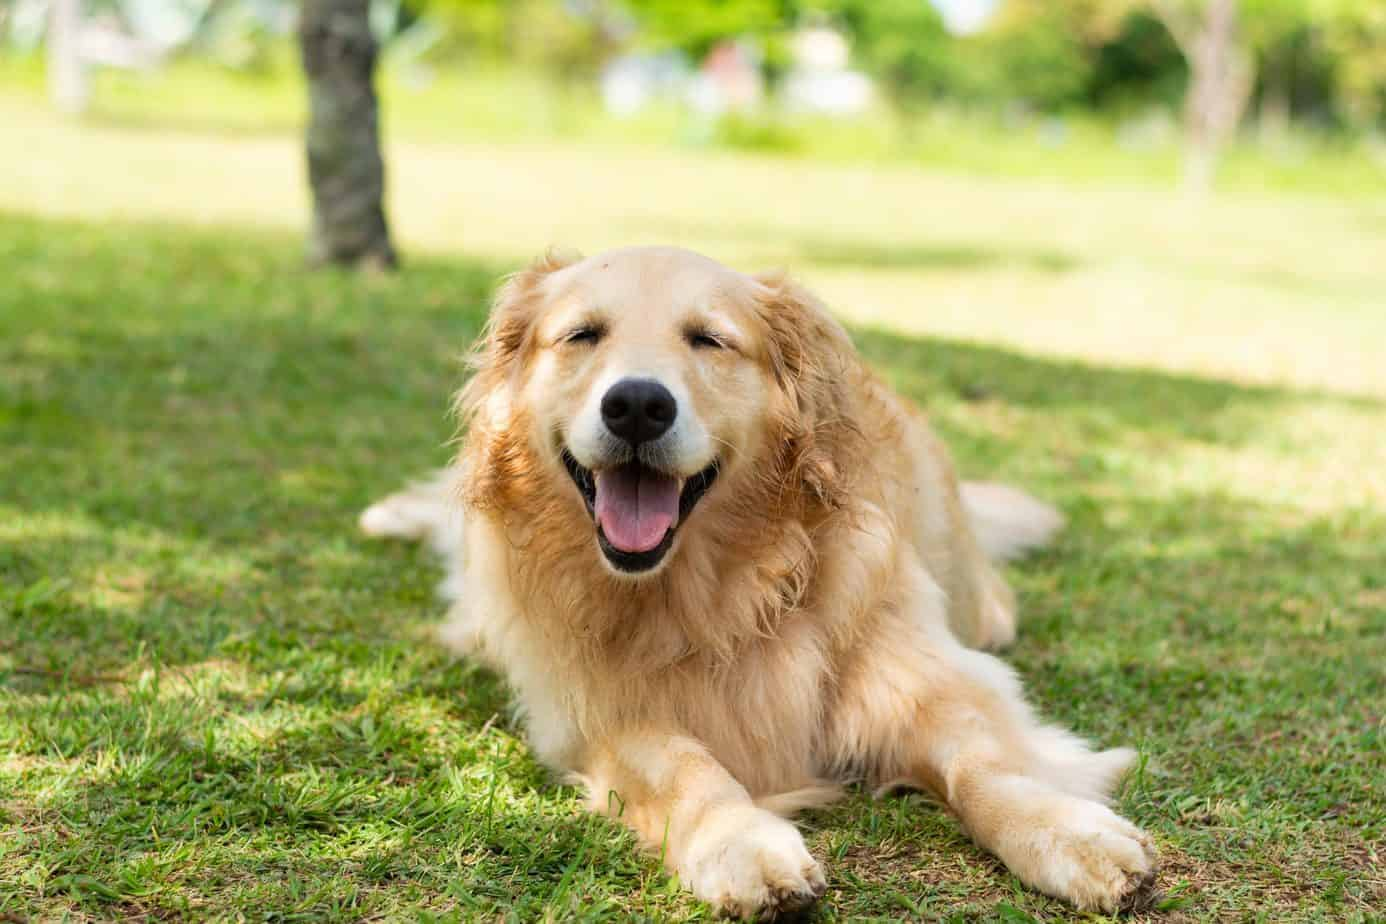 Happy golden retriever lounges on the grass. Potty train an older dog: Establish a routine, use lots of praise, take him outside often, and learn to watch his cues. And never scold.